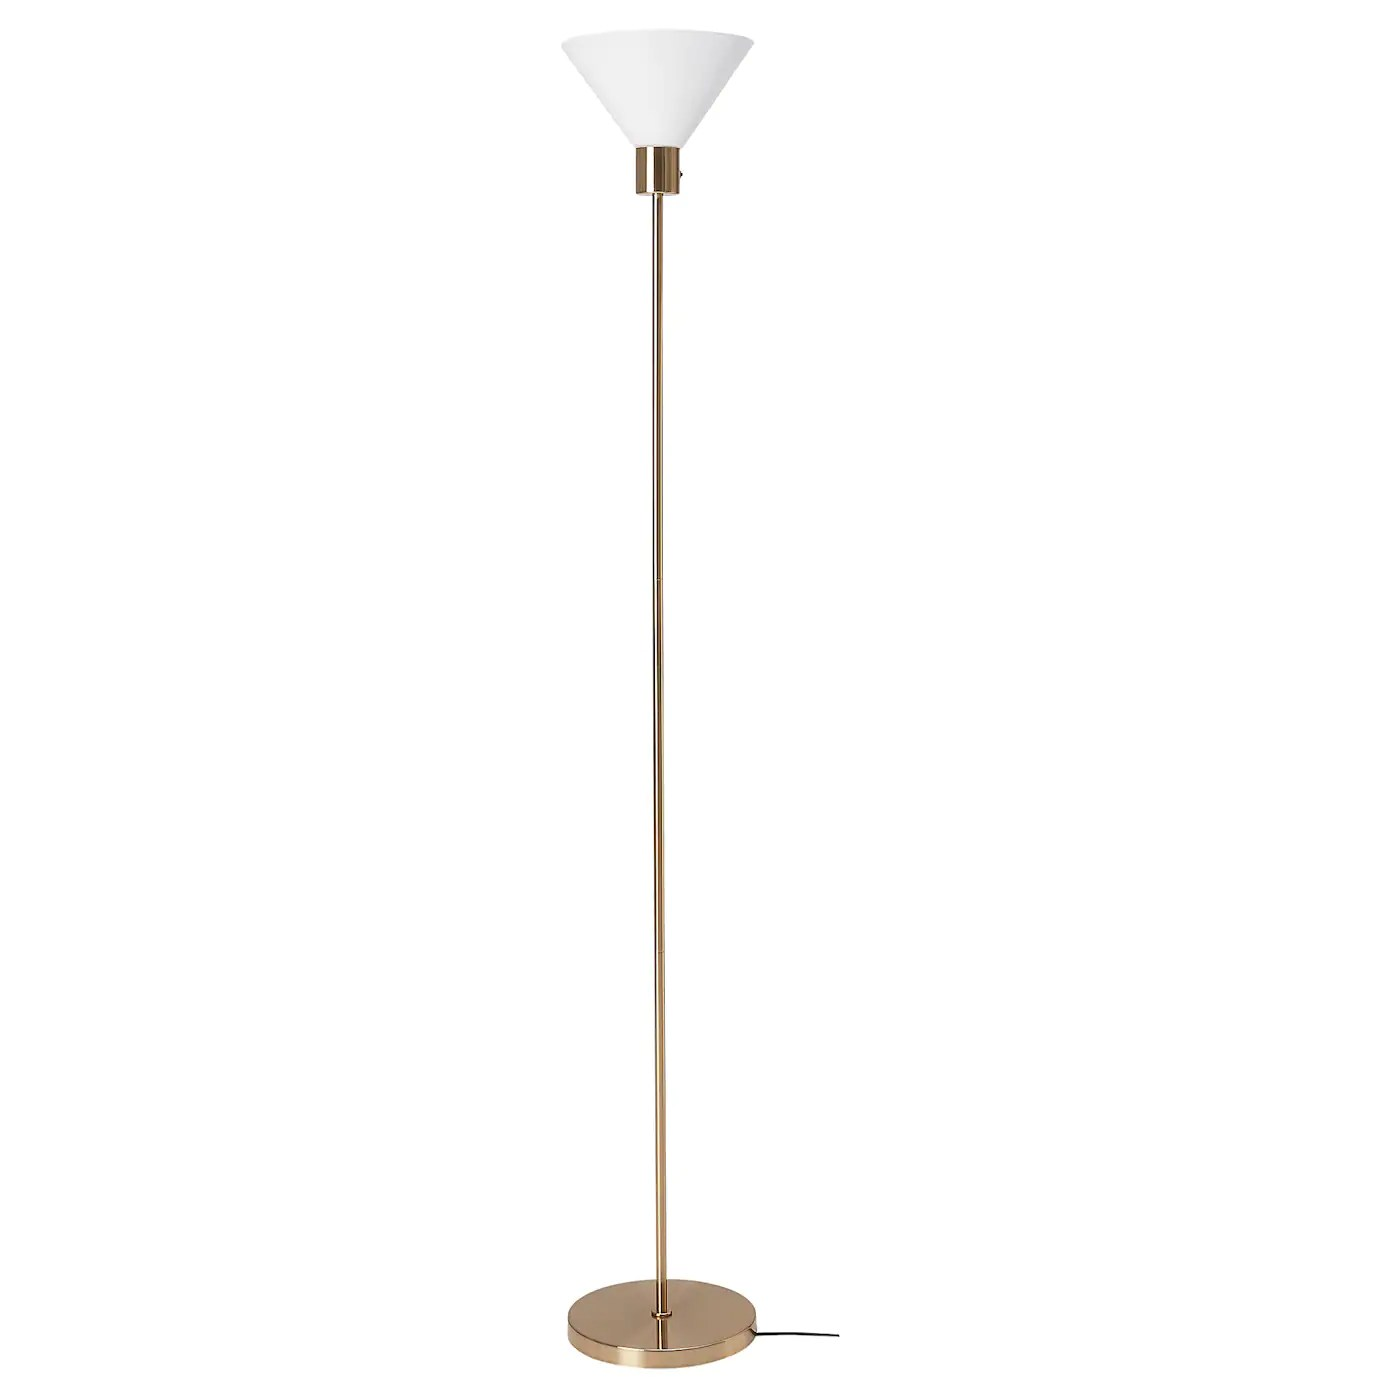 Flugbo Floor Uplight With Led Bulb Brass Color Glass Ikea